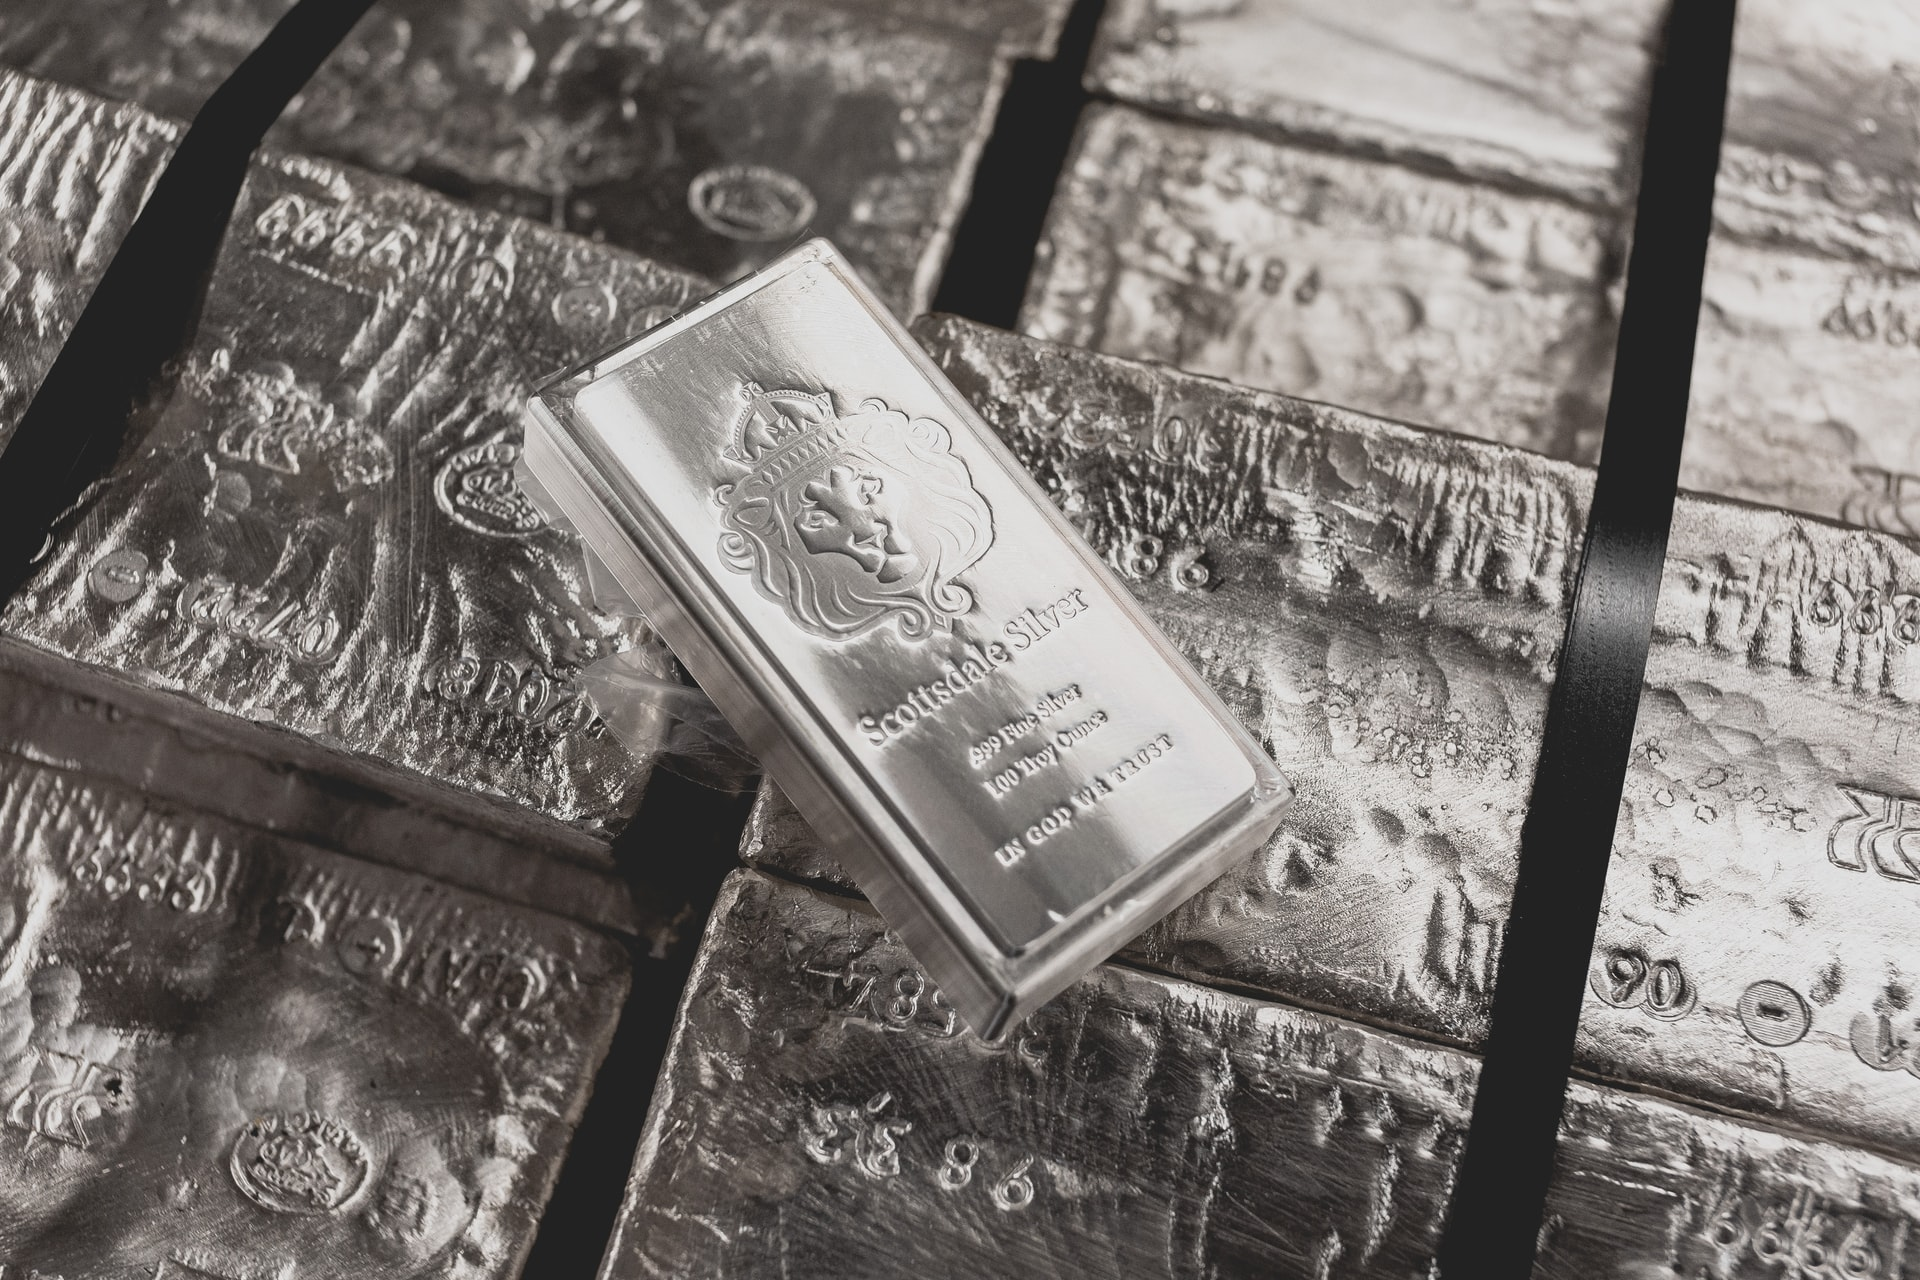 Silver has many unique properties that make it interesting.